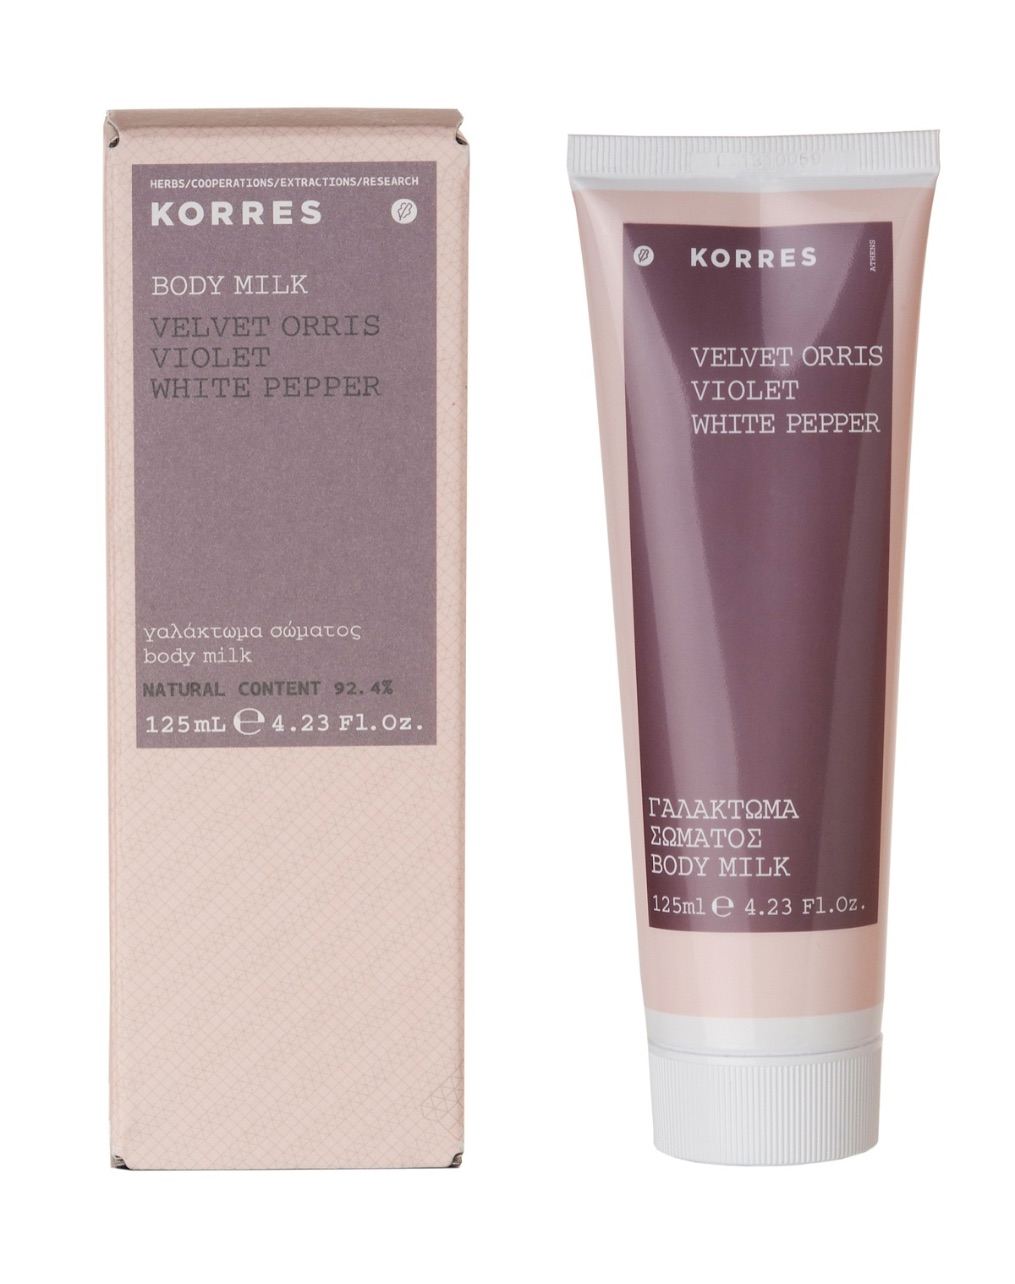 Korres Velvet Orris, Violet & White Pepper Body Milk 125ml